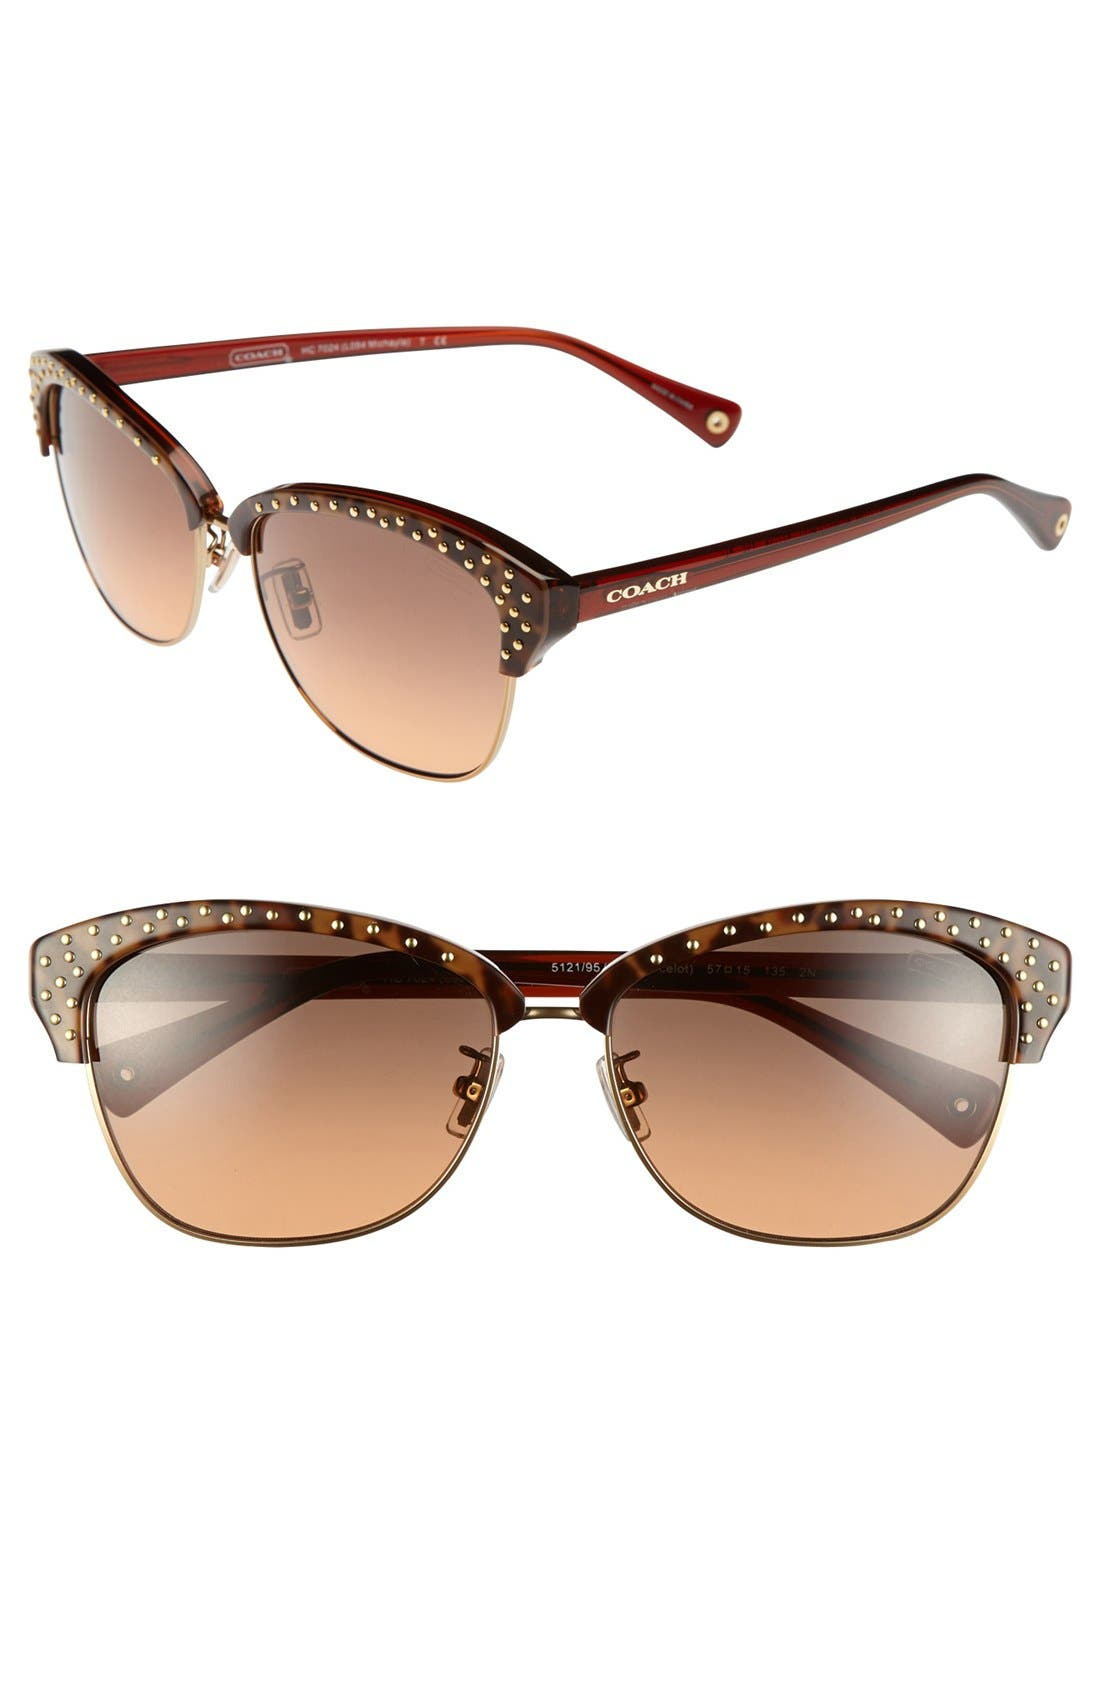 Main Image - COACH 'Clubmaster' 57mm Cat Eye Sunglasses